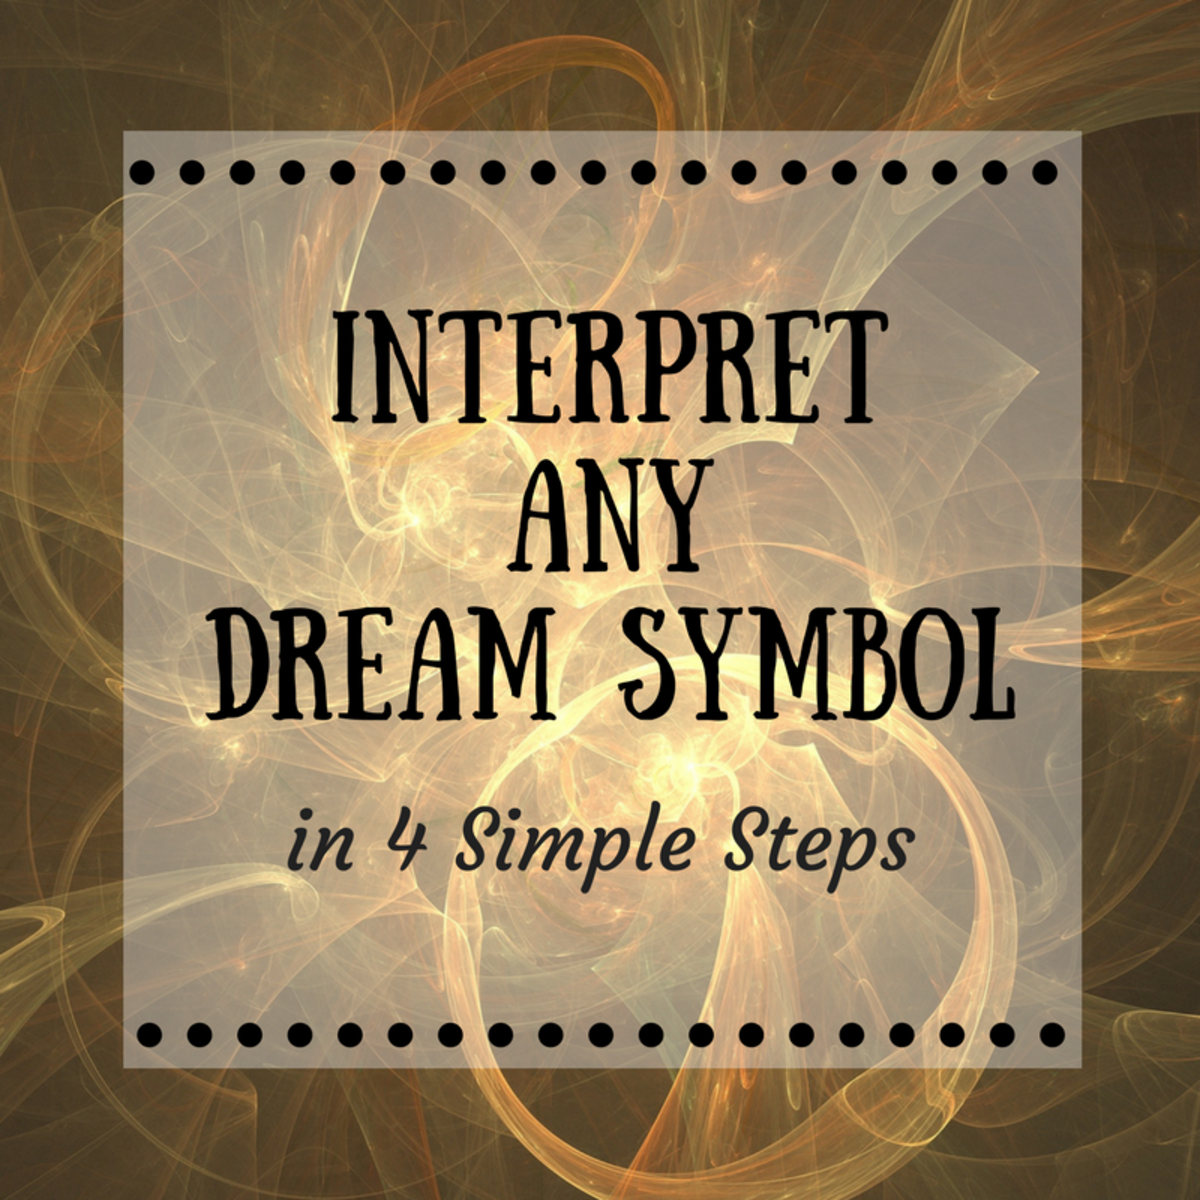 How to Interpret Any Dream Symbol in 4 Simple Steps